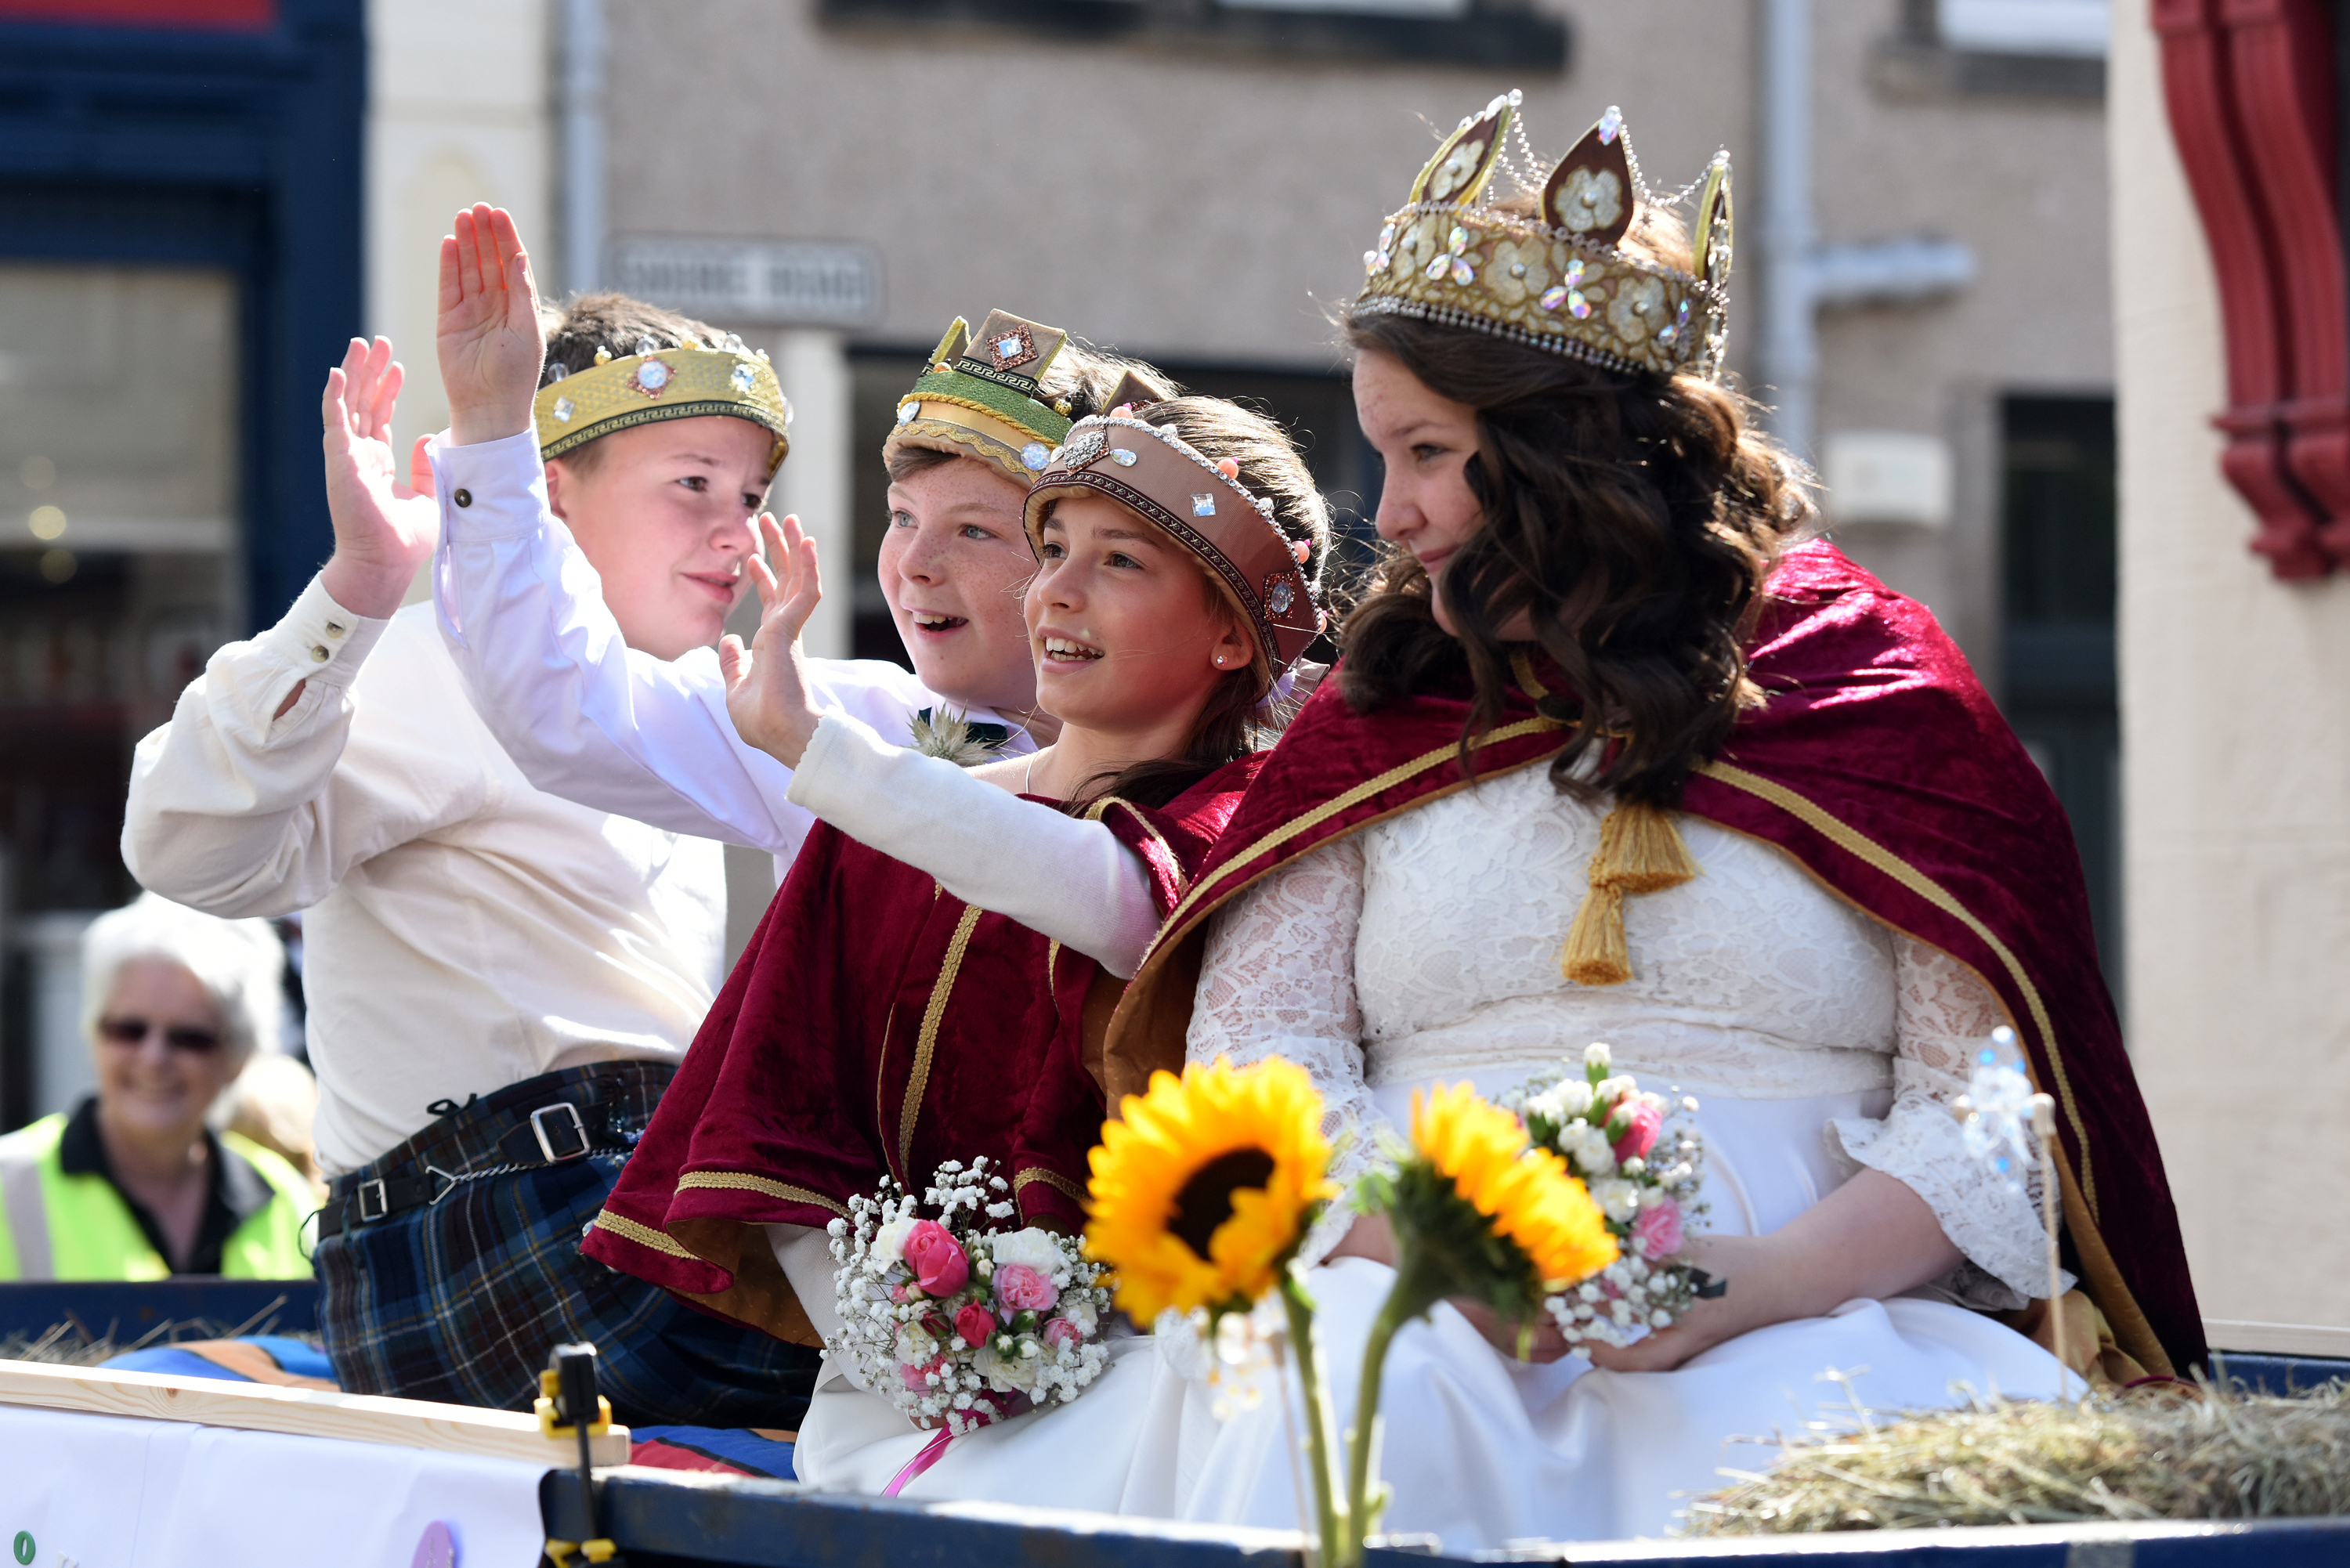 The royal party at last year's festival parade.